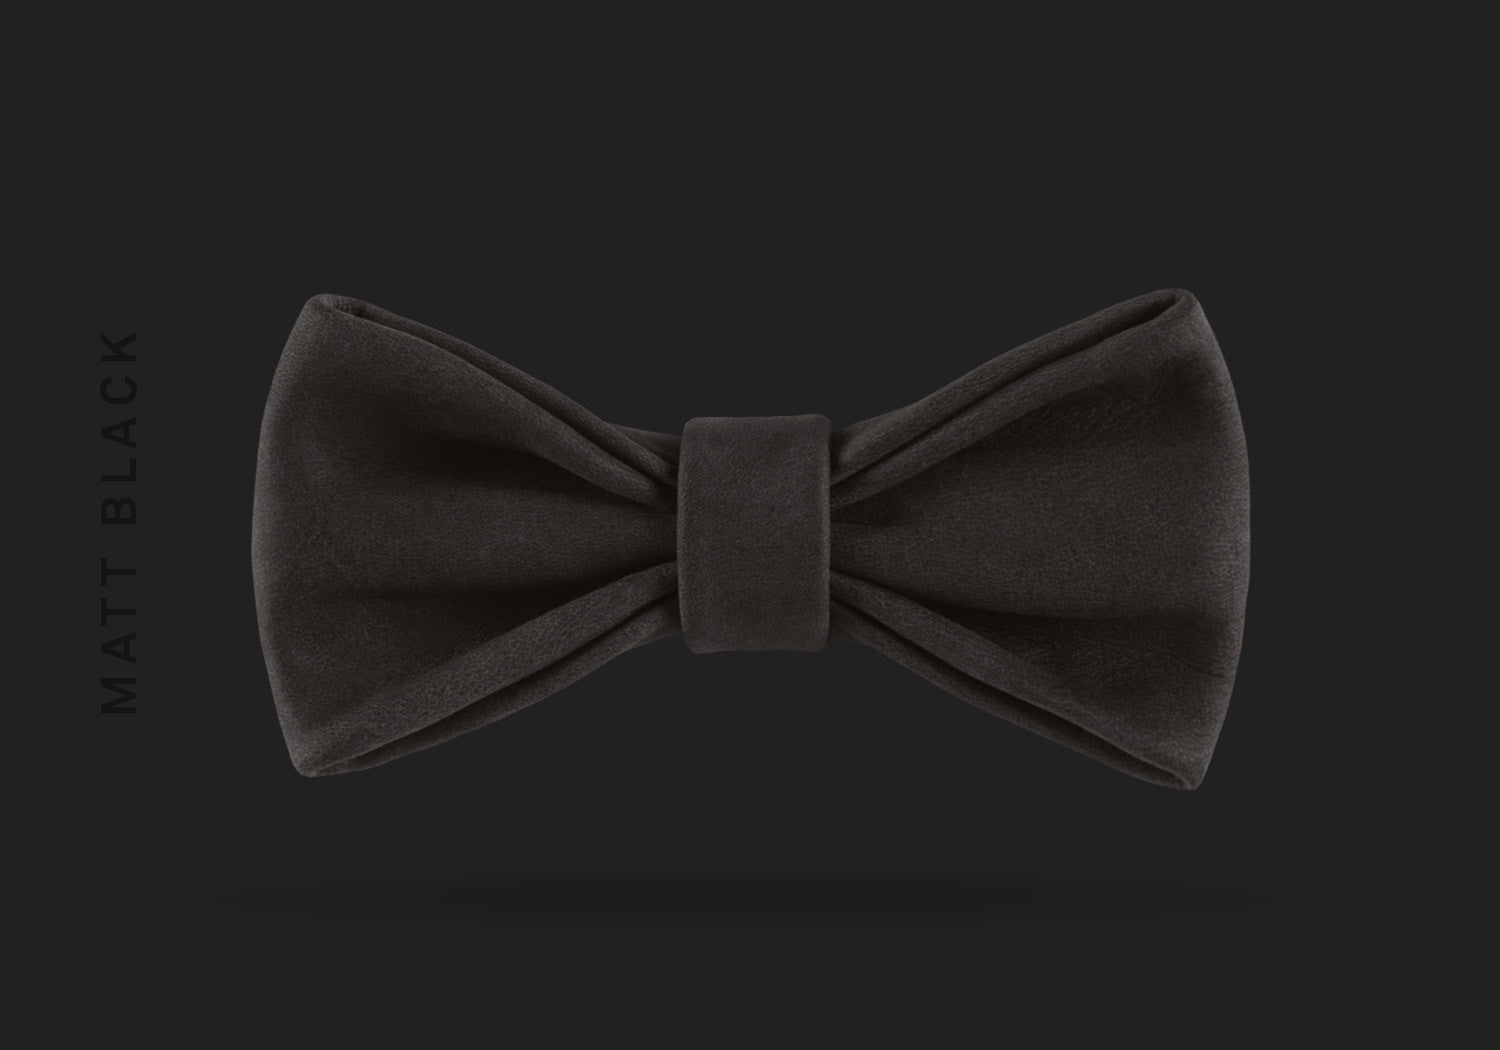 This matt black WEEF handmade leather bow is a great present or gift idea for dapper and stylish gentlemen for fathers day, valentines day or Christmas.